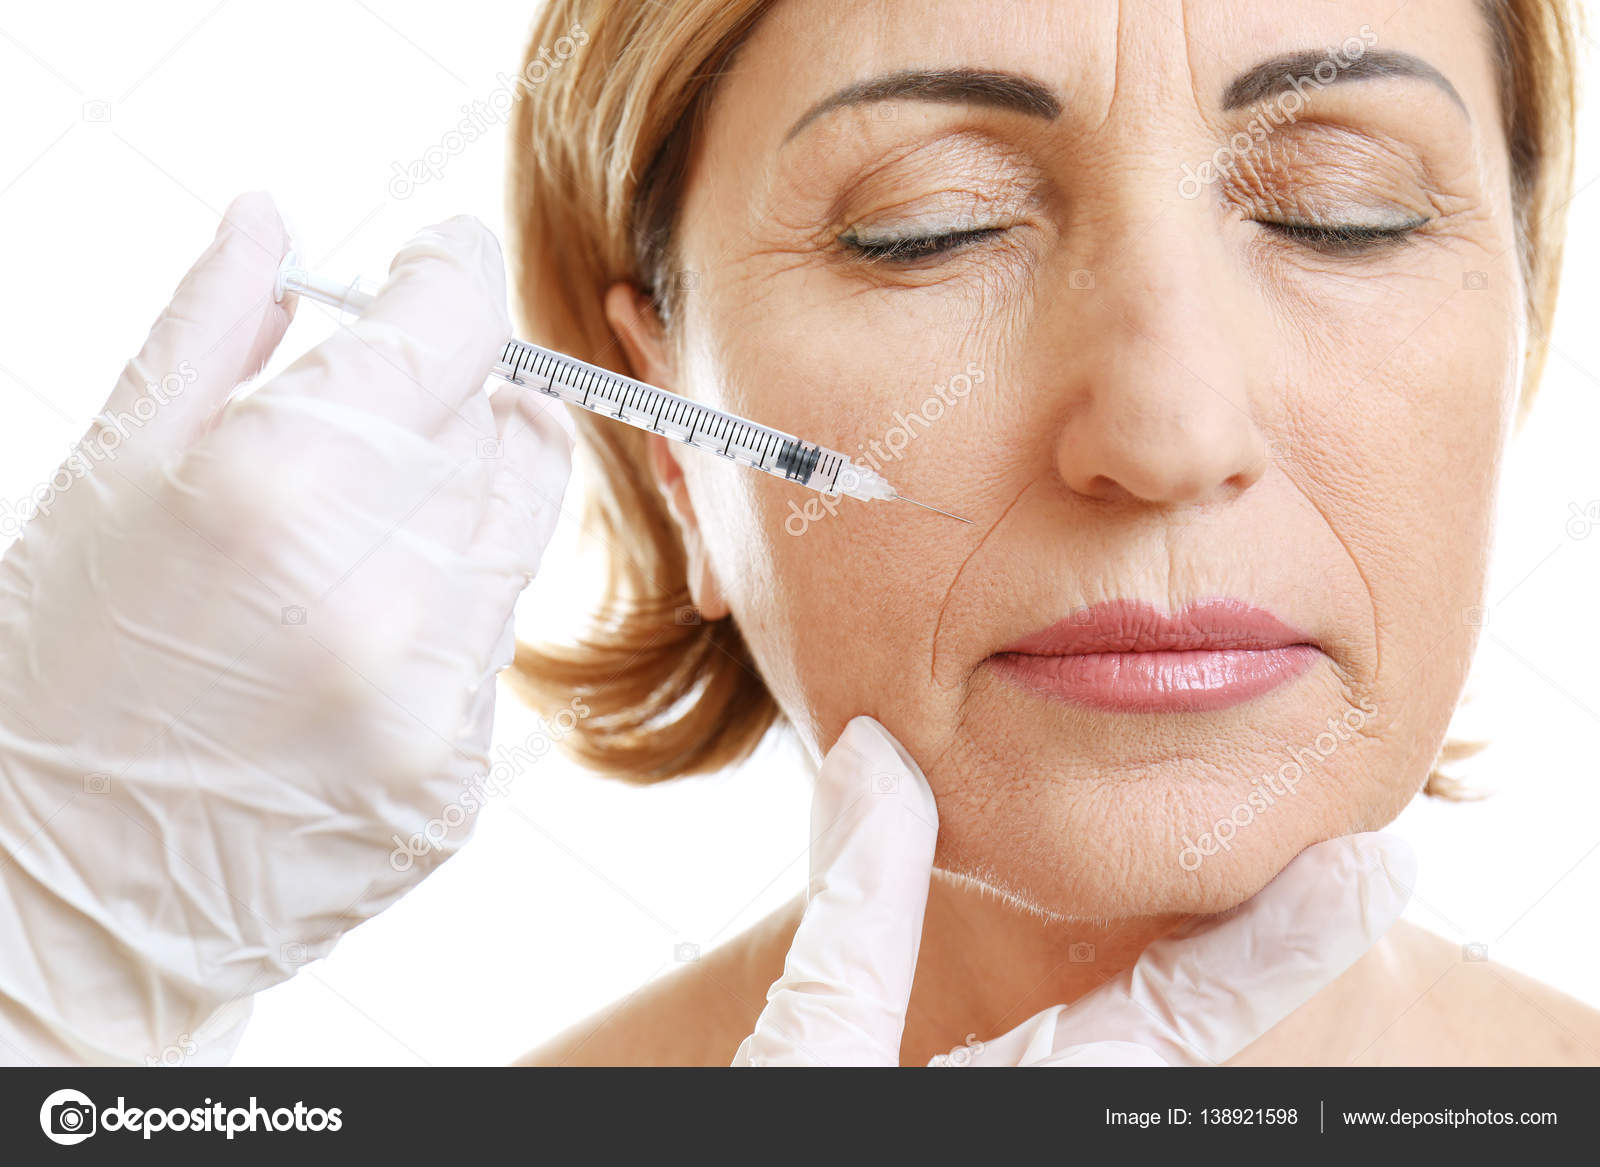 Can help facial rejuvenation procedure touching words